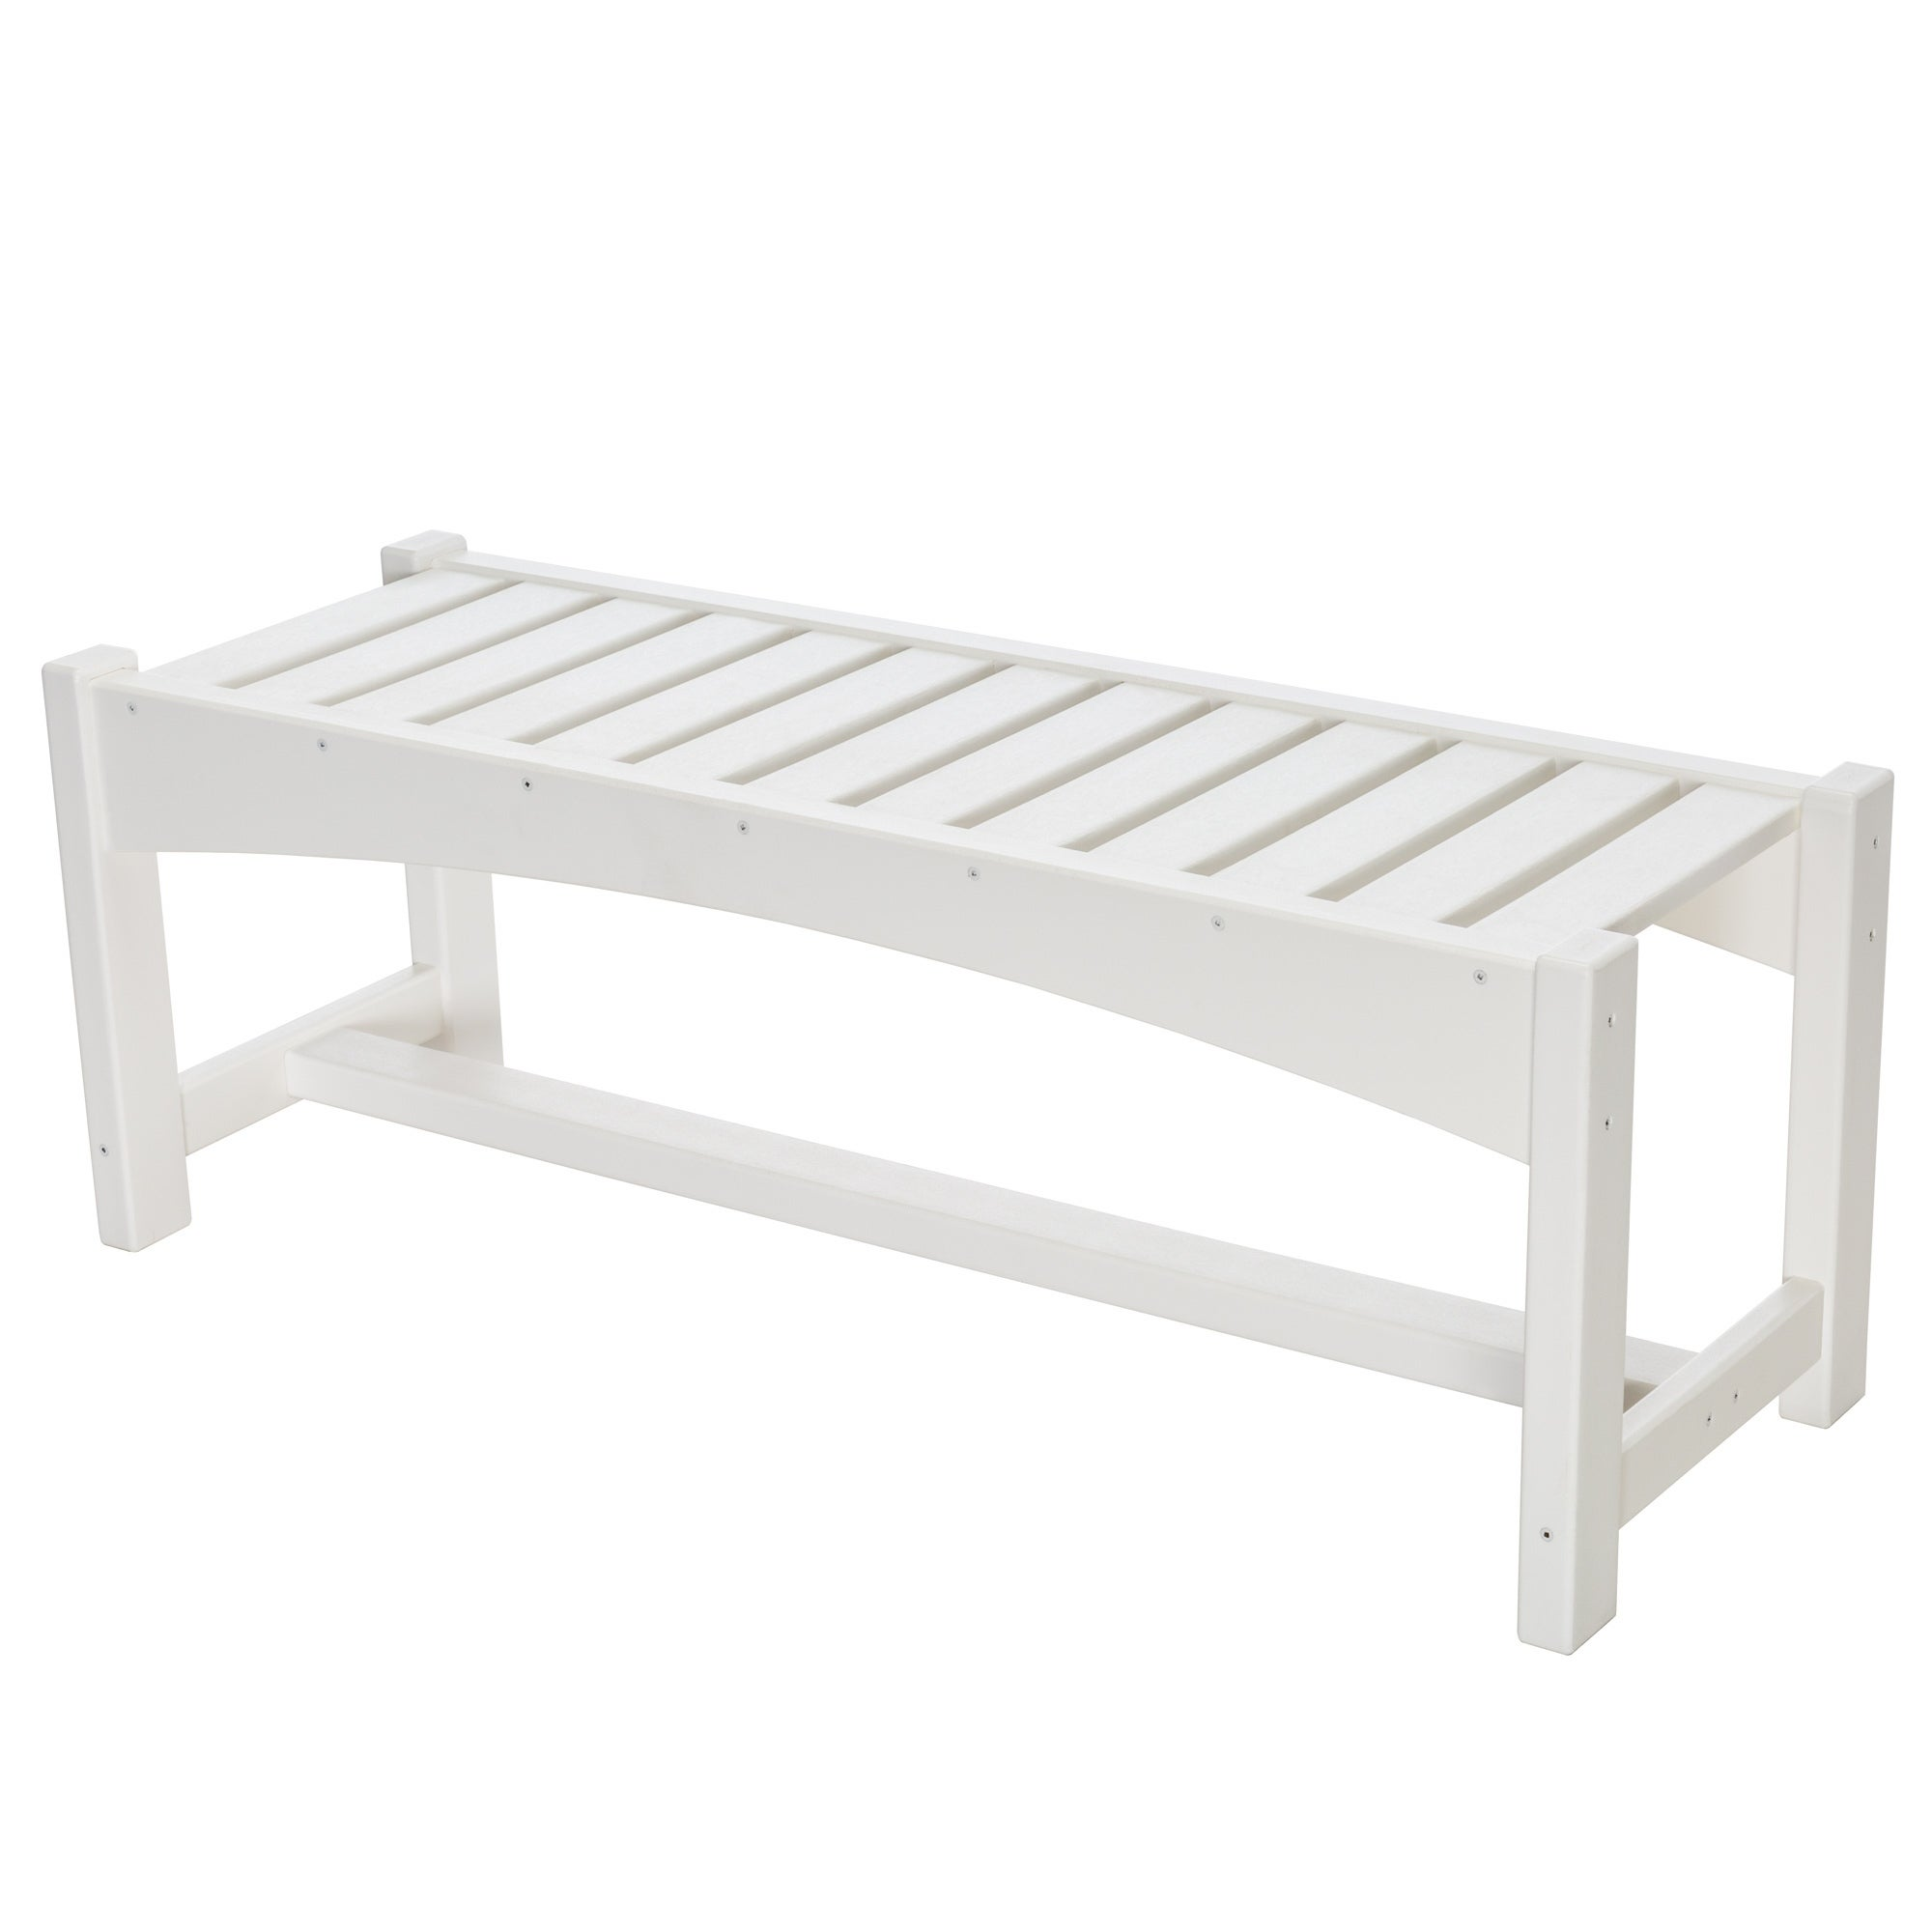 Tremendous Pawleys Island Dining Bench Andrewgaddart Wooden Chair Designs For Living Room Andrewgaddartcom